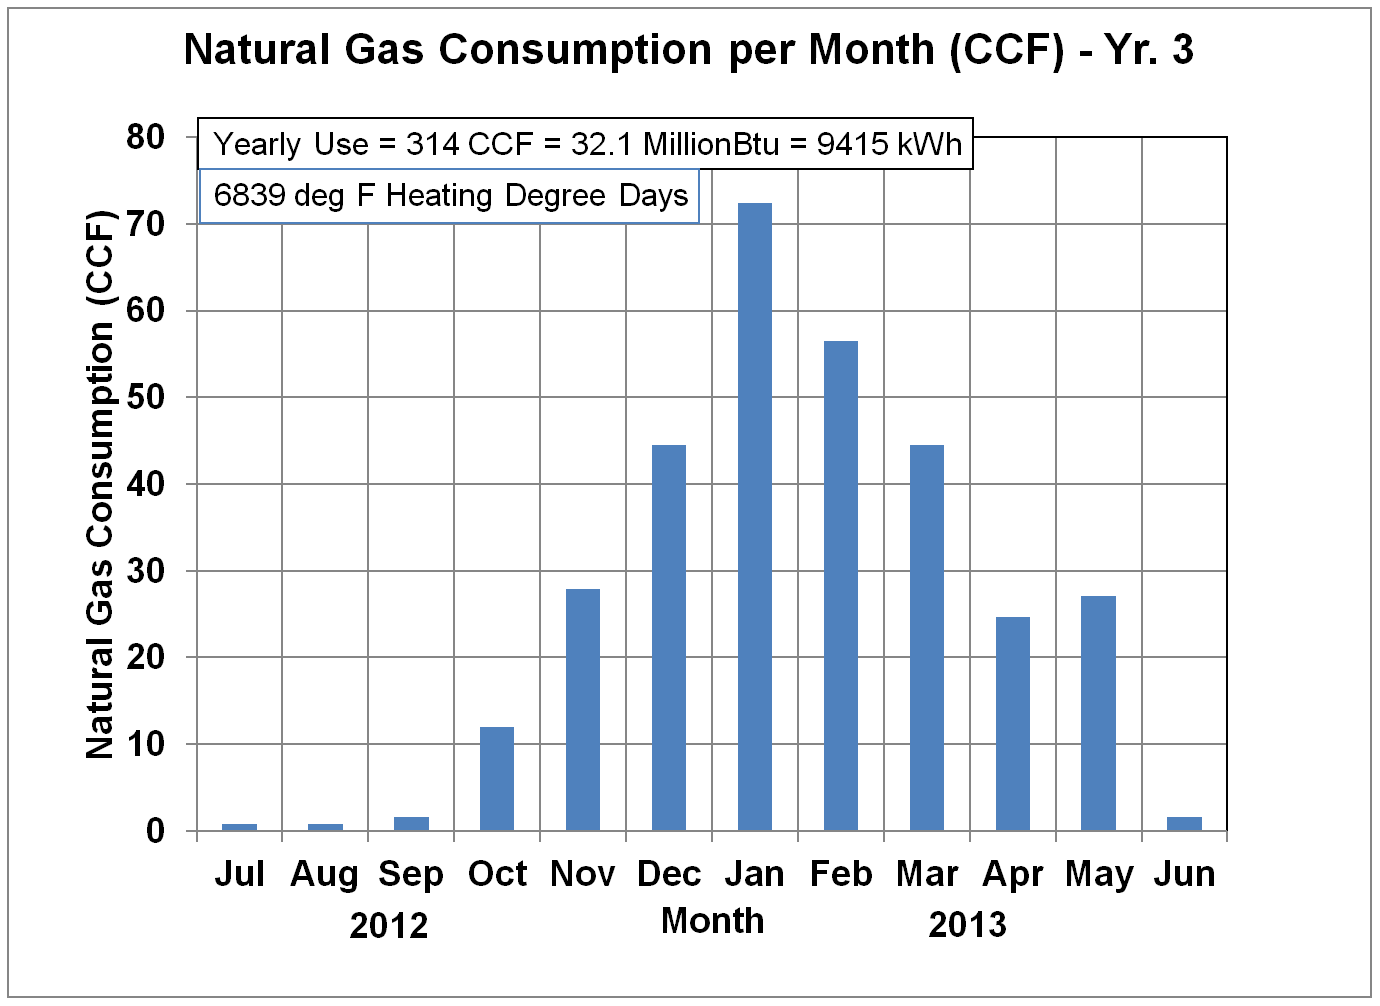 Natural Gas Usage in CCF - Yr. 3